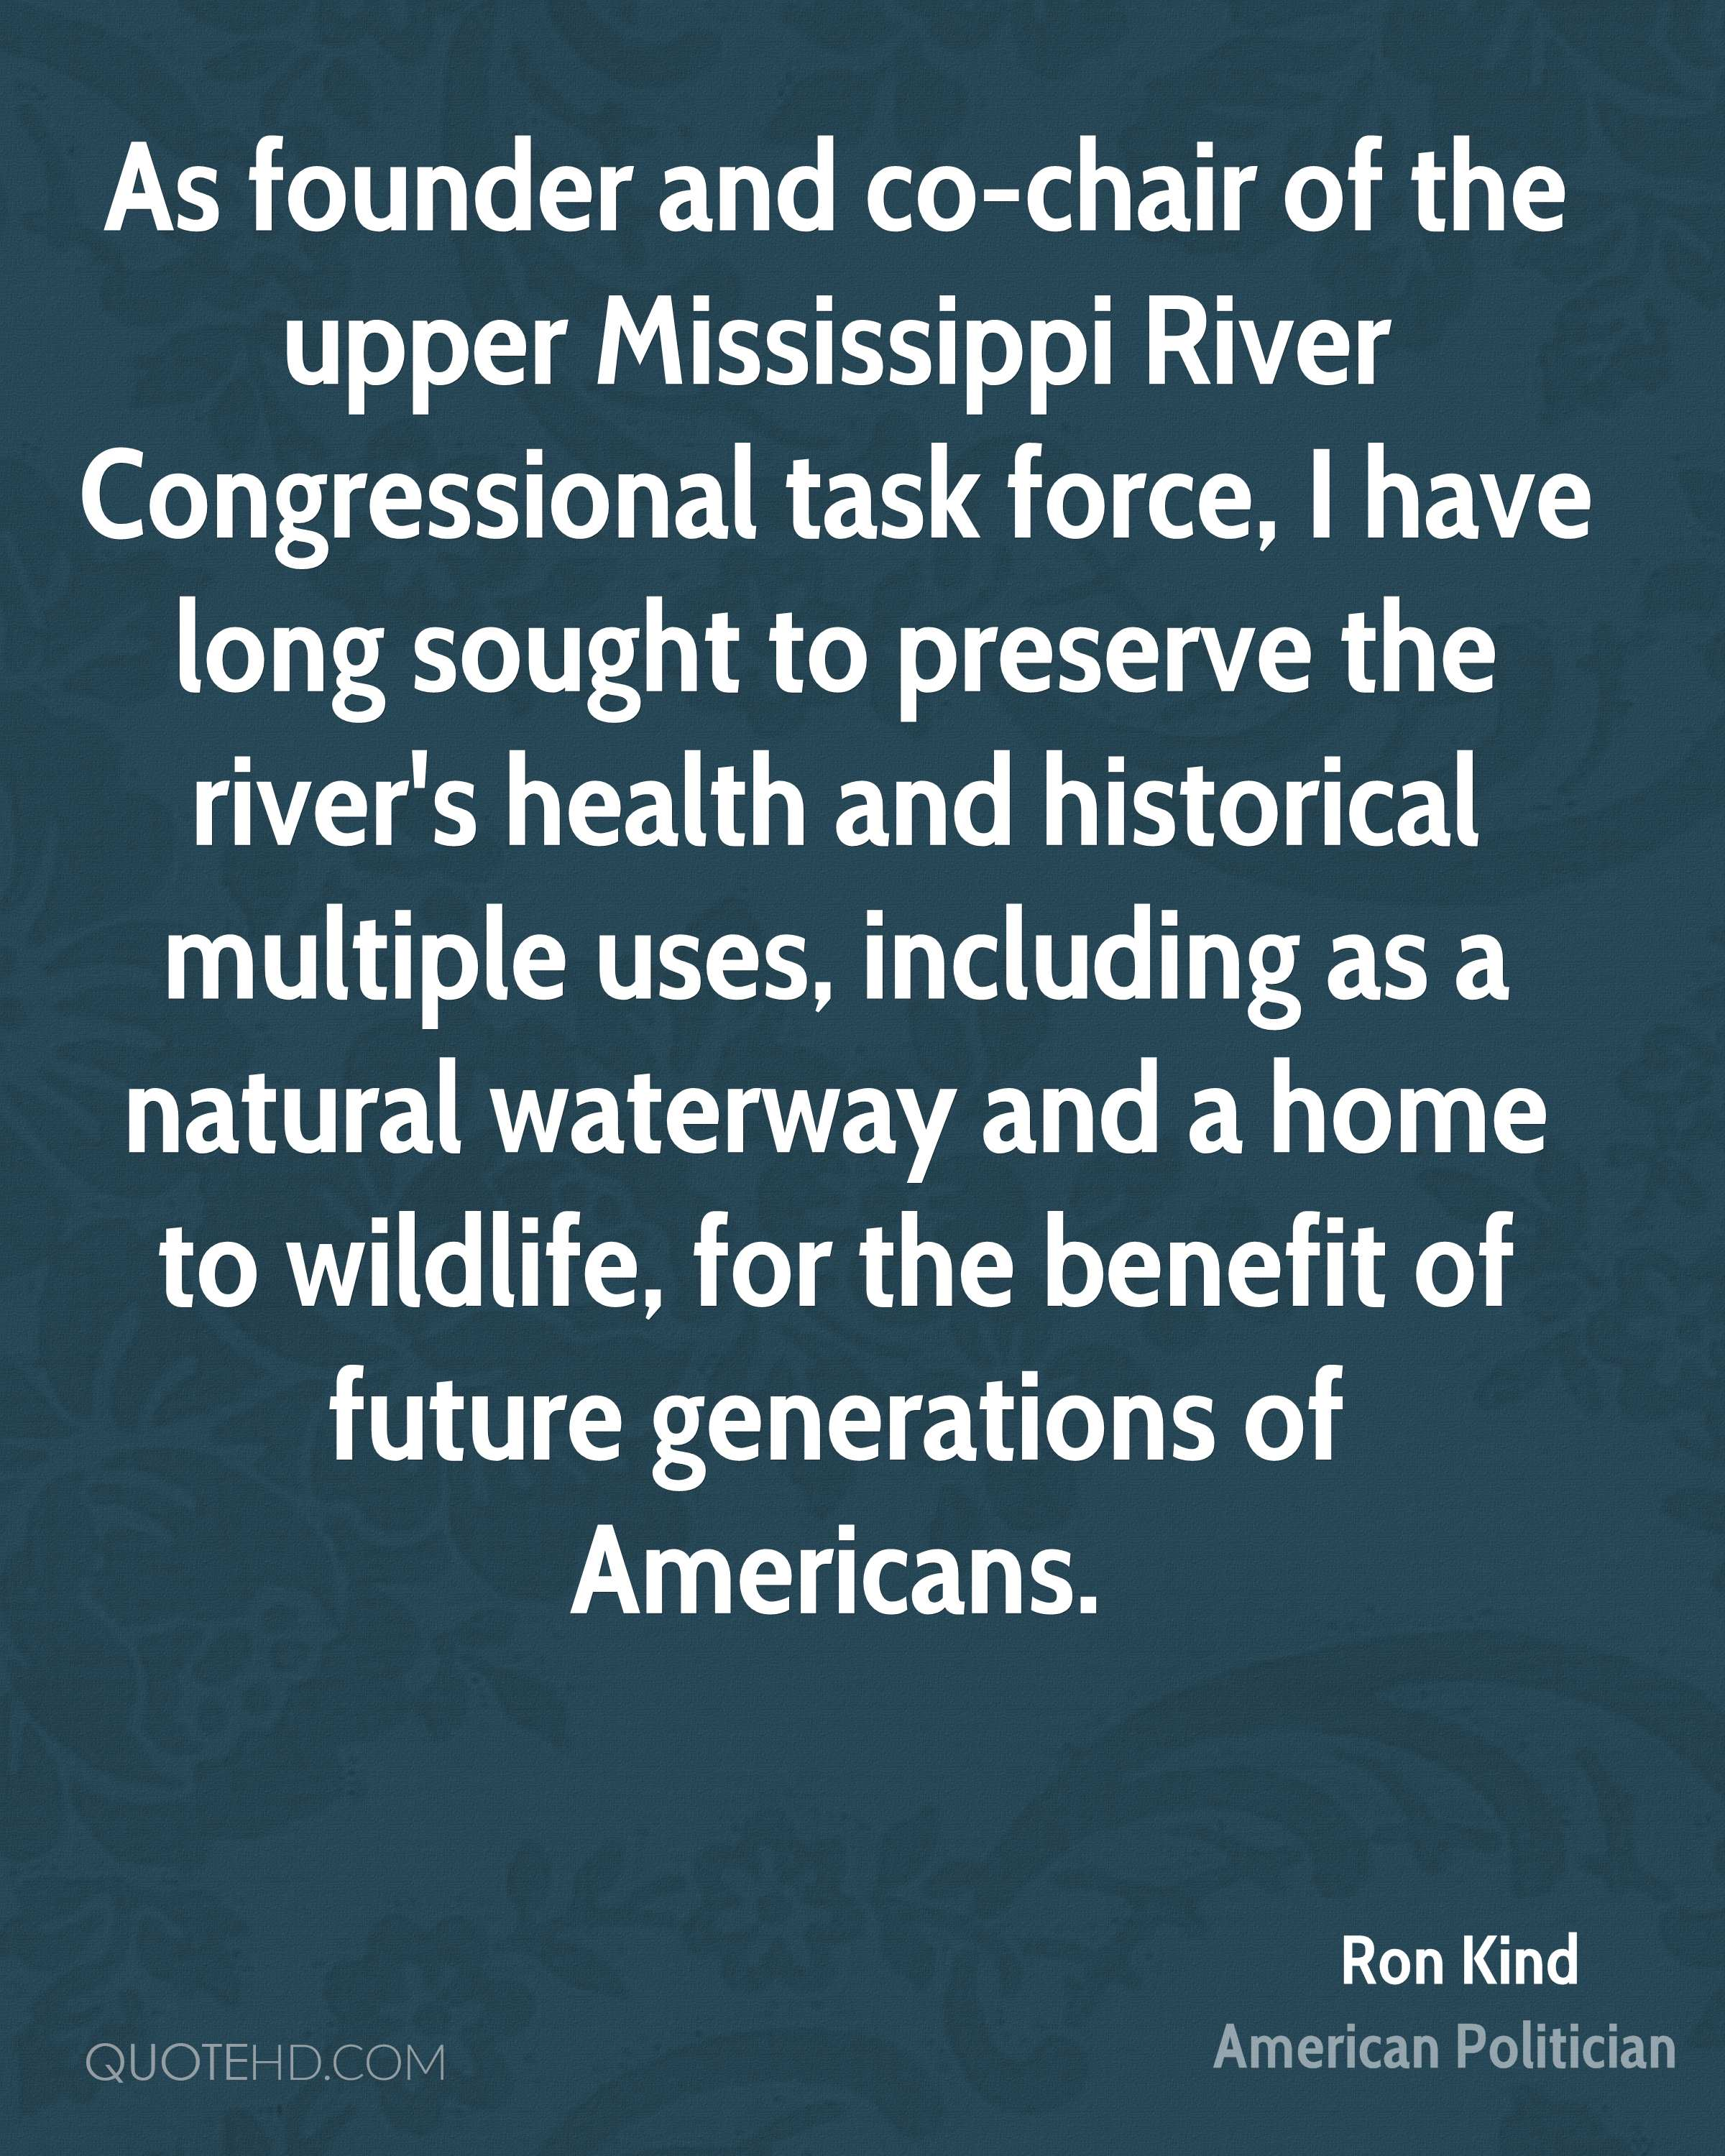 As founder and co-chair of the upper Mississippi River Congressional task force, I have long sought to preserve the river's health and historical multiple uses, including as a natural waterway and a home to wildlife, for the benefit of future generations of Americans.